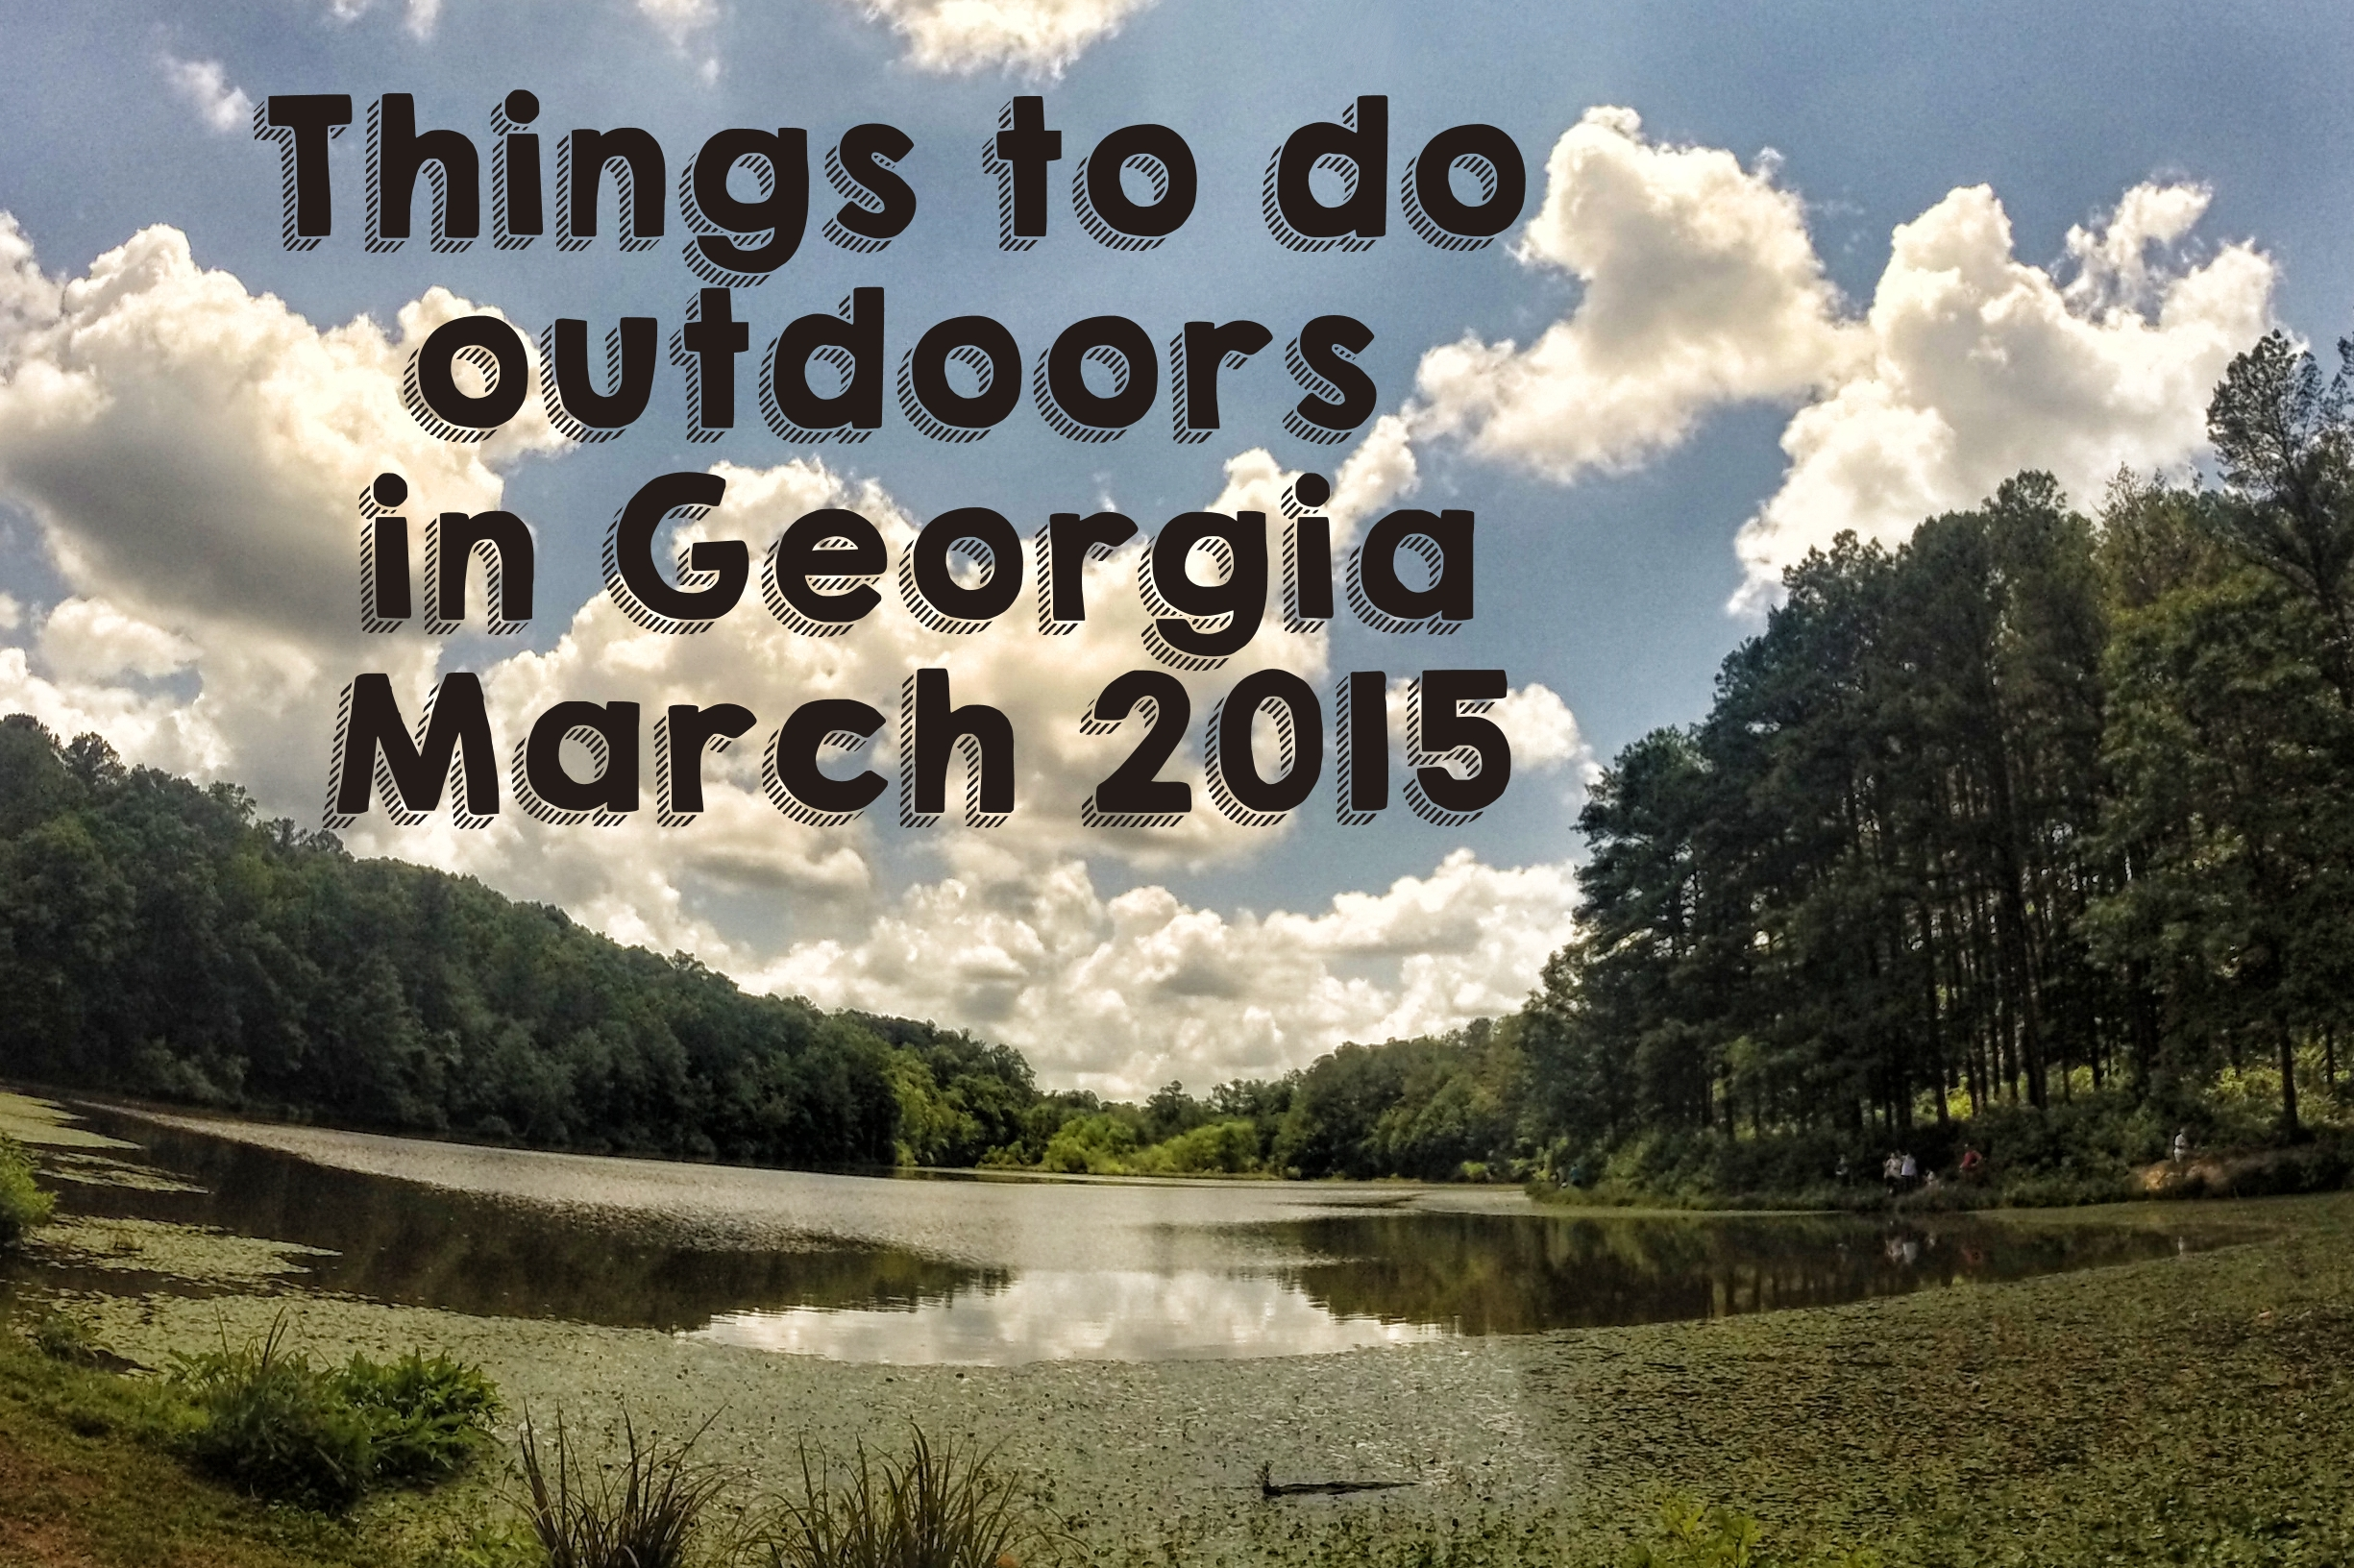 Things to do outdoors in Georgia March 2015